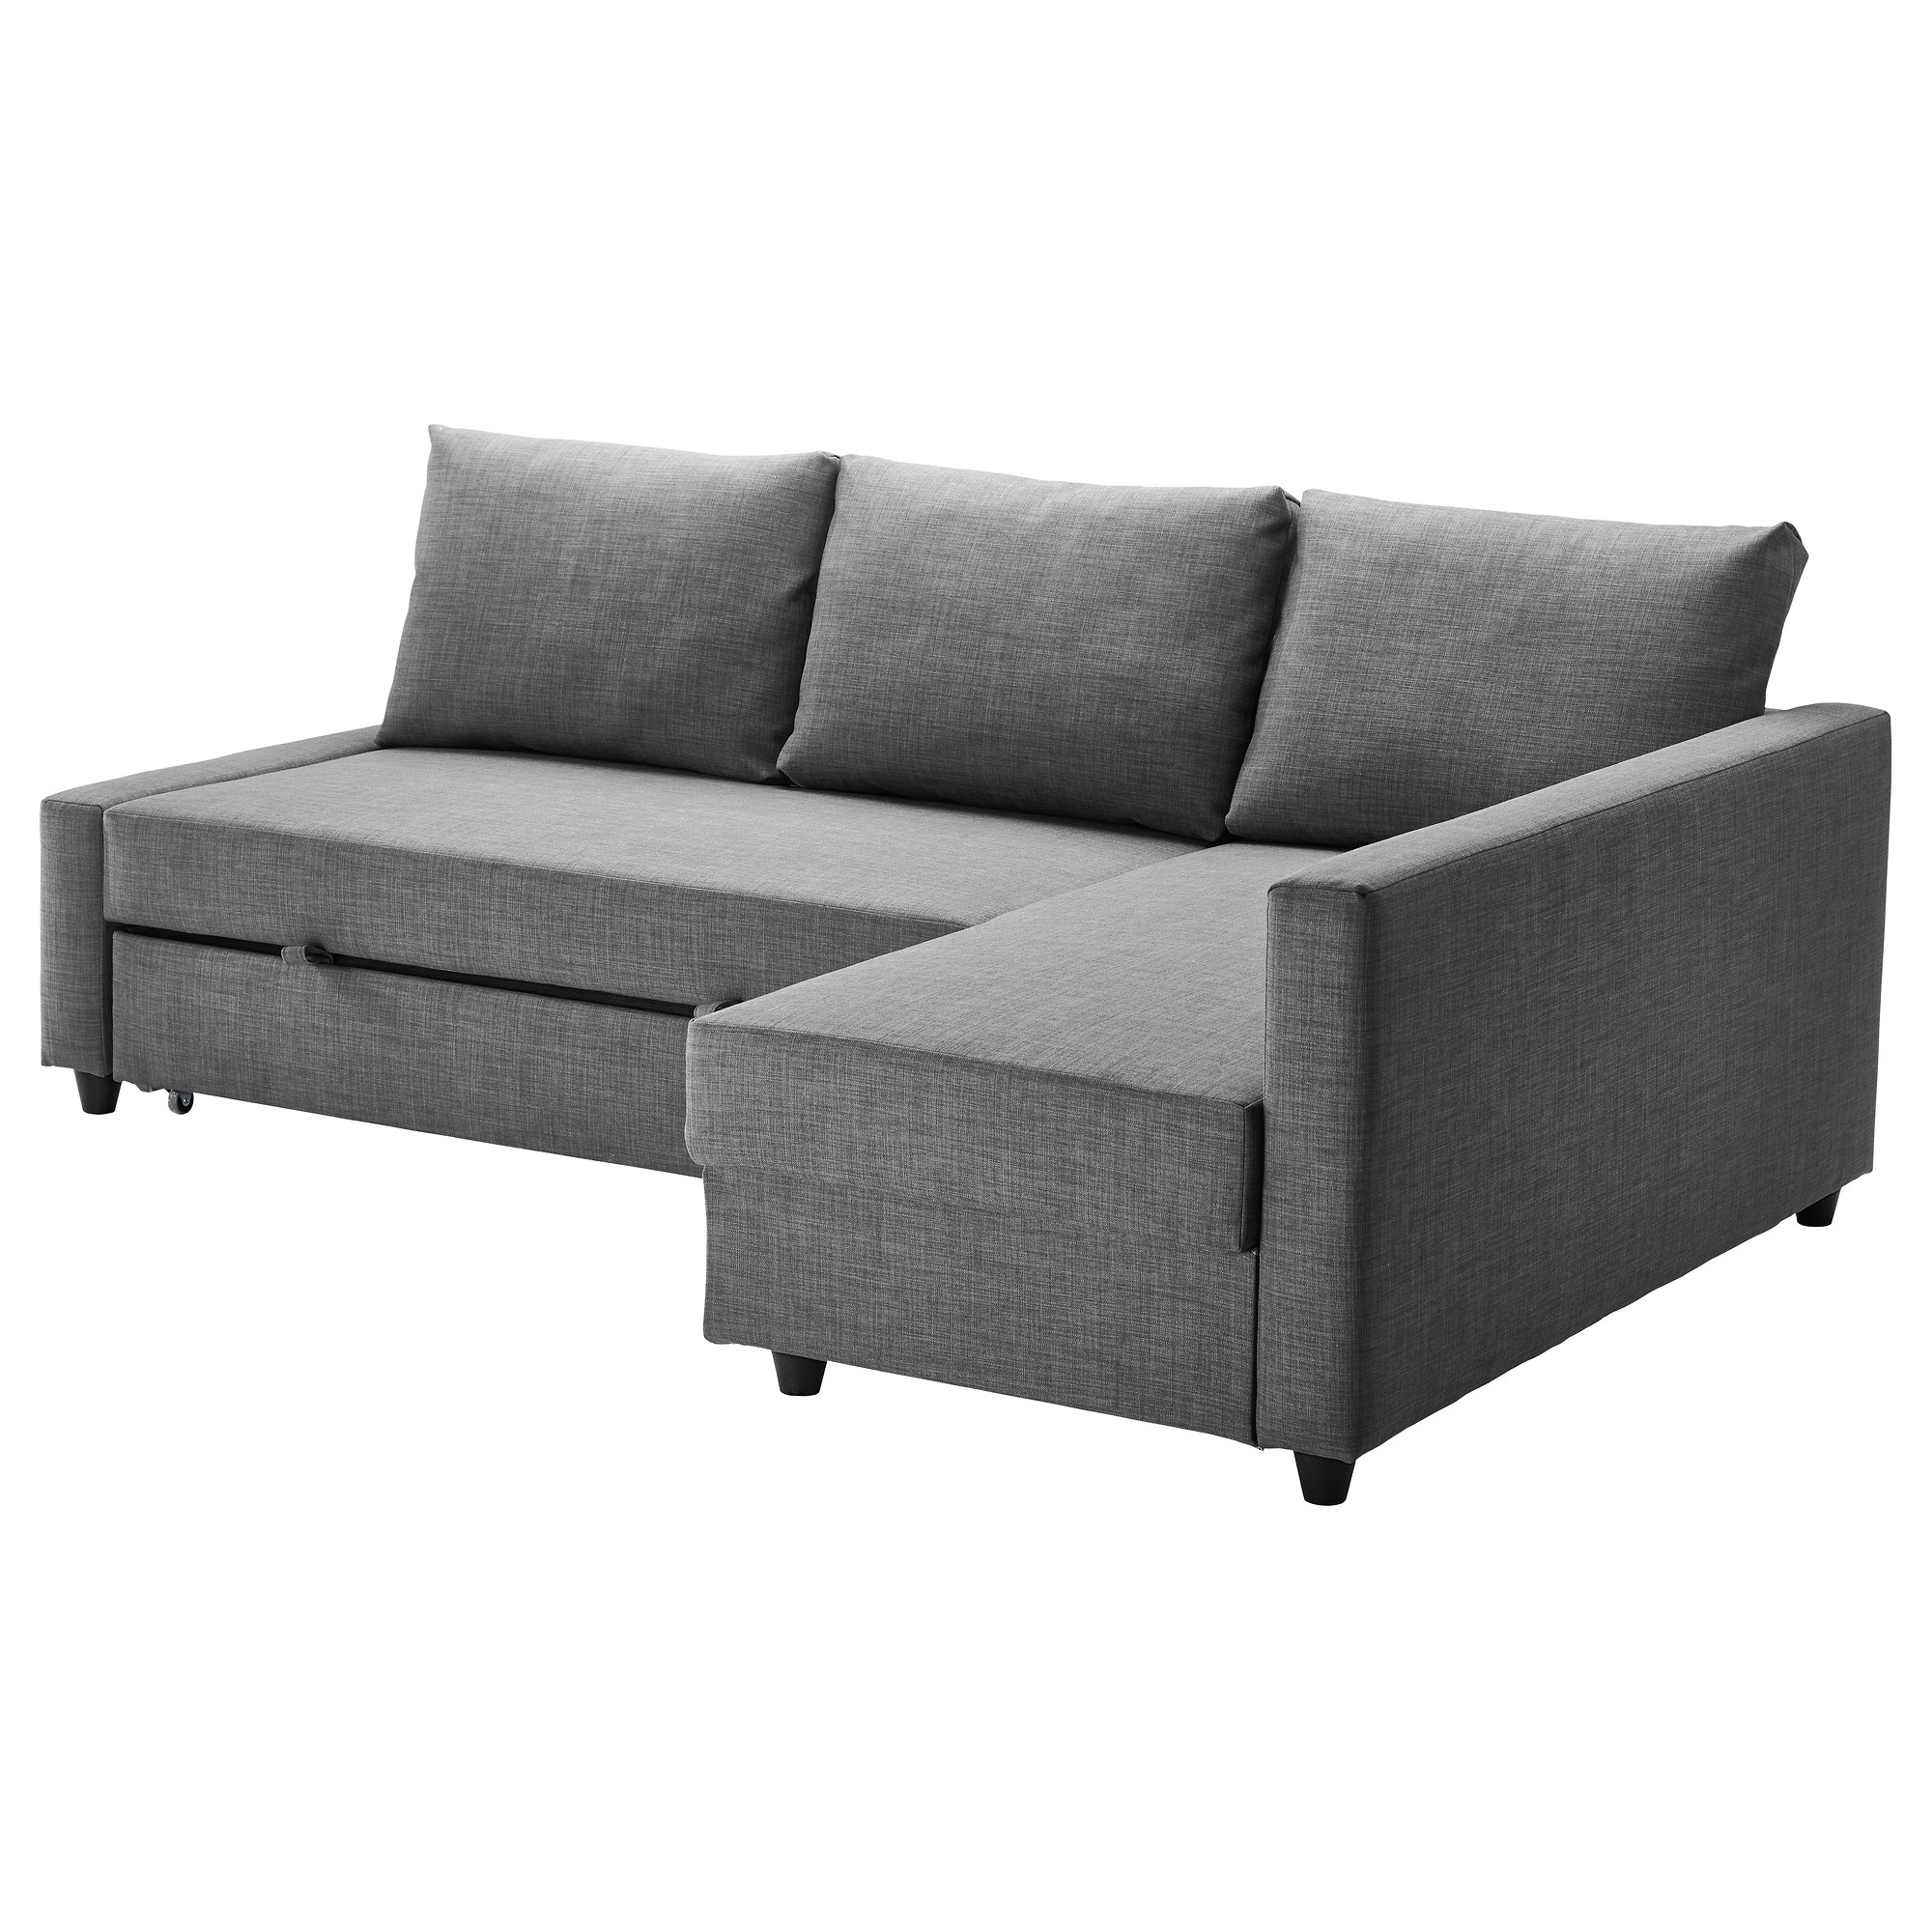 - FRIHETEN - Corner Sofa-bed With Storage, Skiftebo Dark Grey IKEA